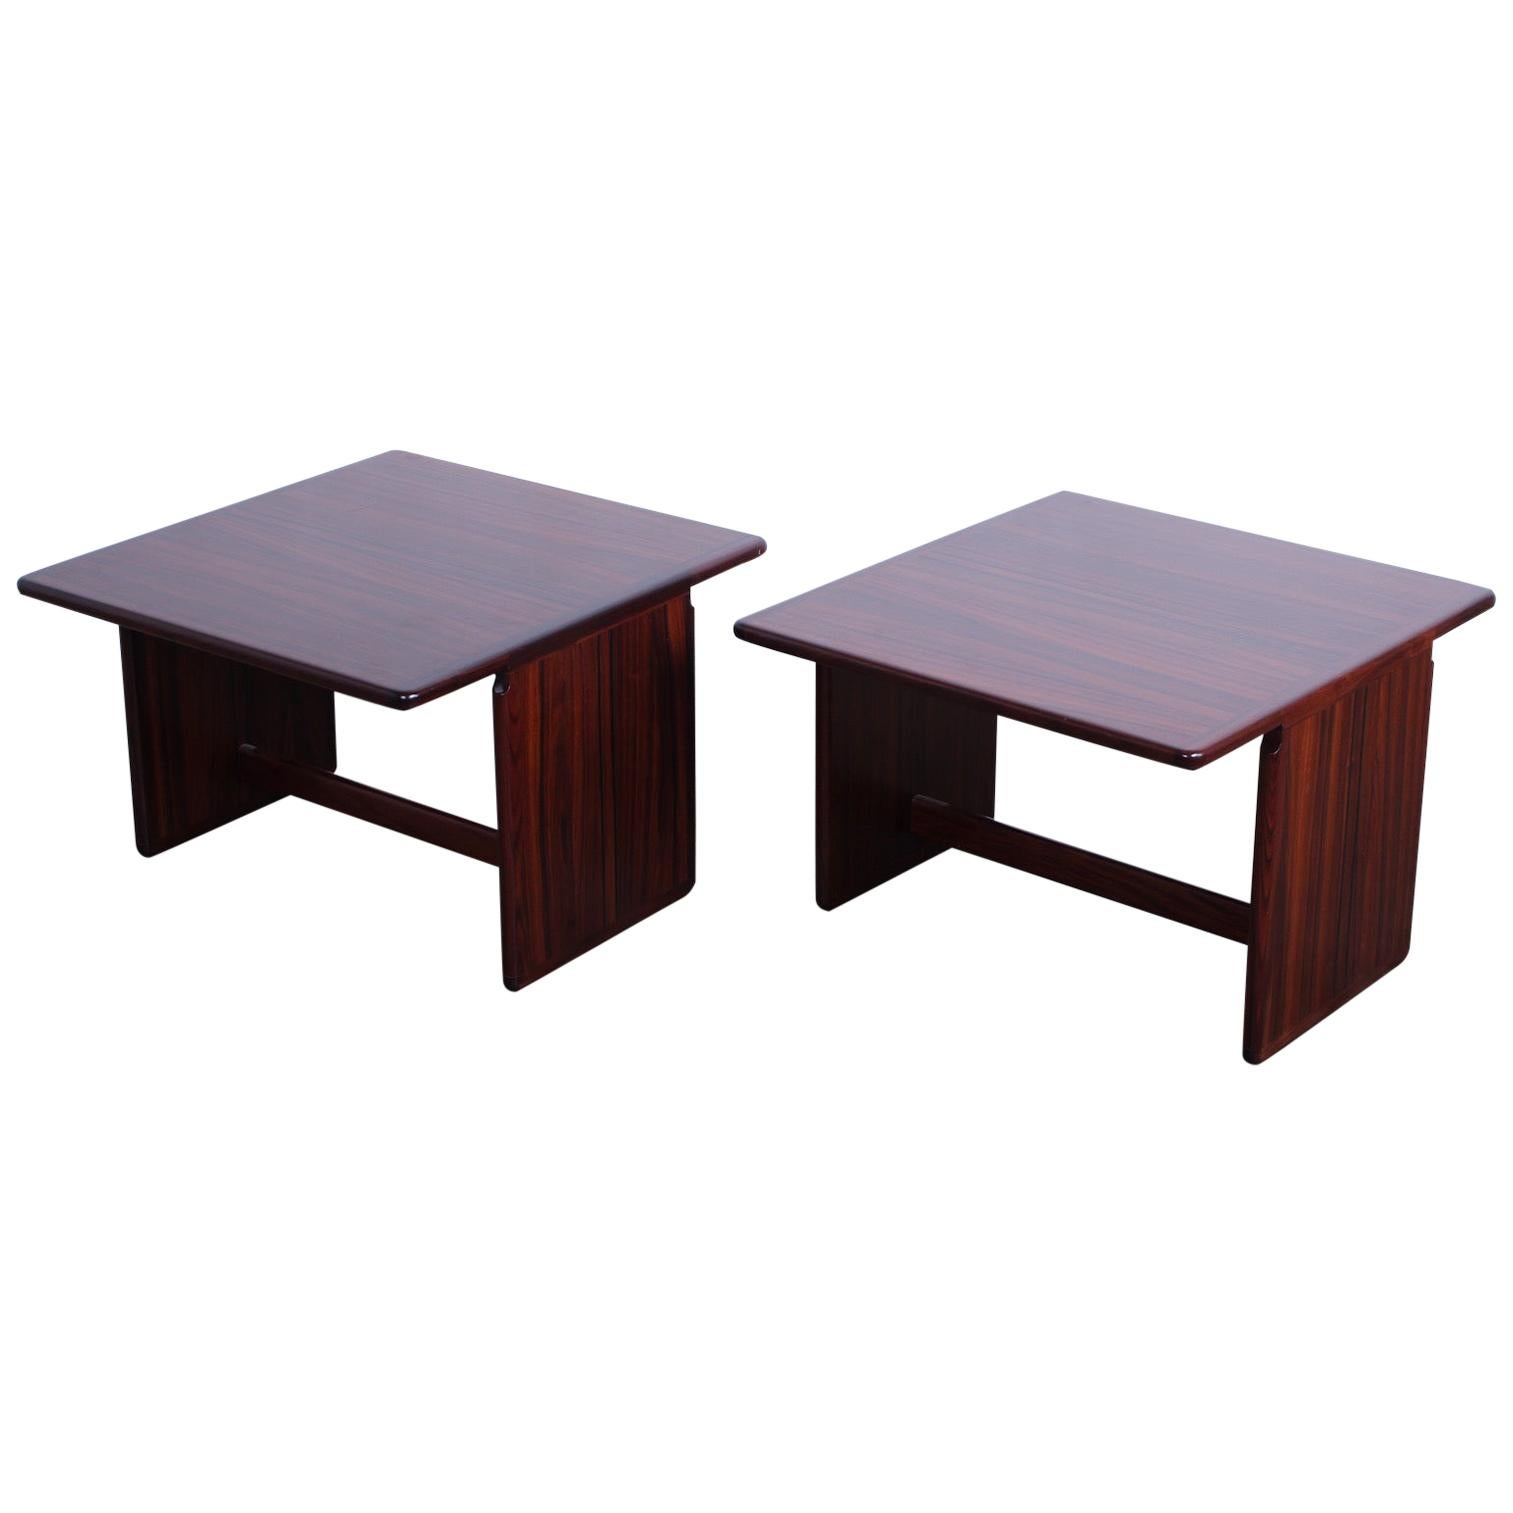 """Pair of """"Artona"""" Tables by Afra and Tobia Scarpa"""